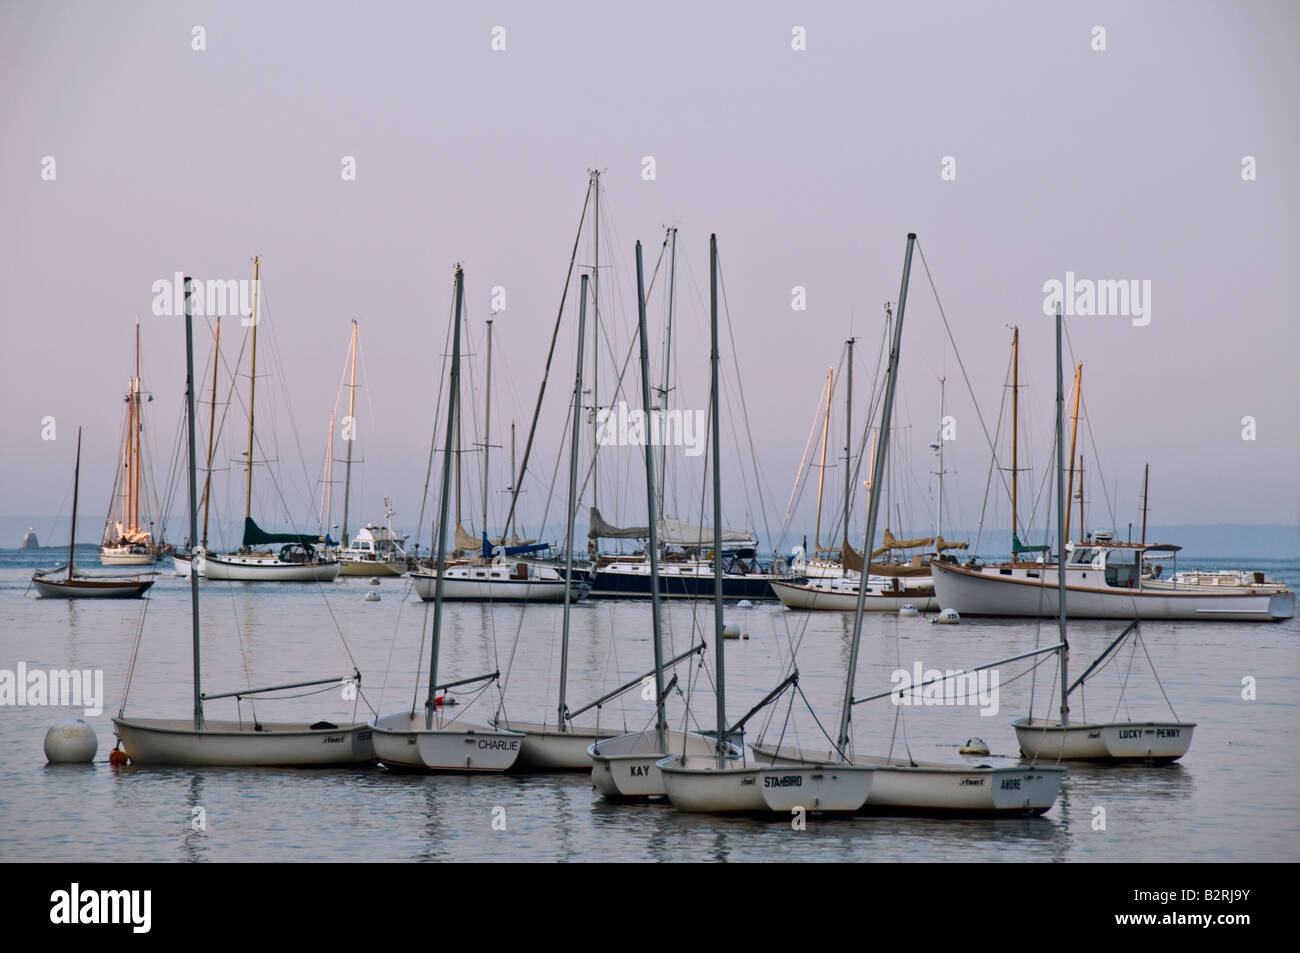 Clusters of sailboats in a harbor at dawn - Stock Image